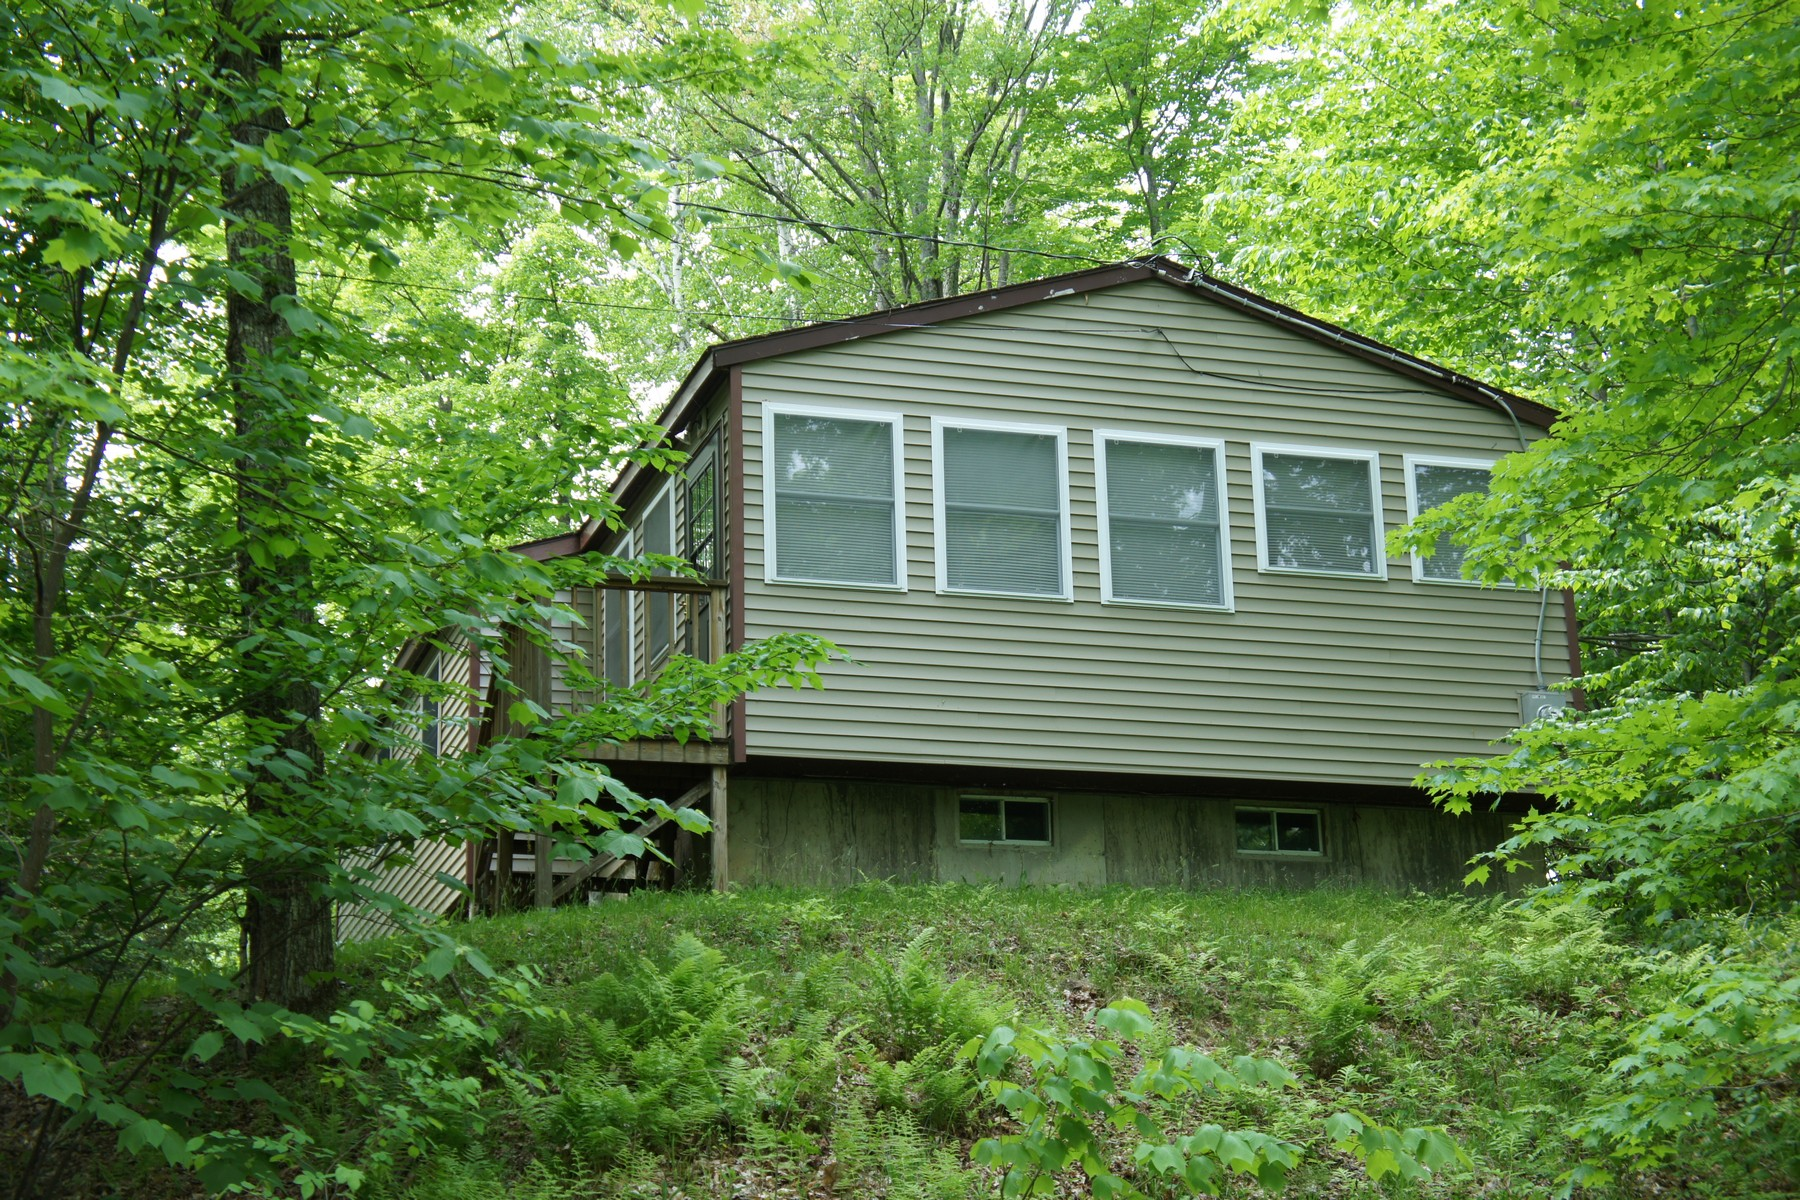 Single Family Home for Sale at 167 Point Rd., Elmore Elmore, Vermont, 05657 United States